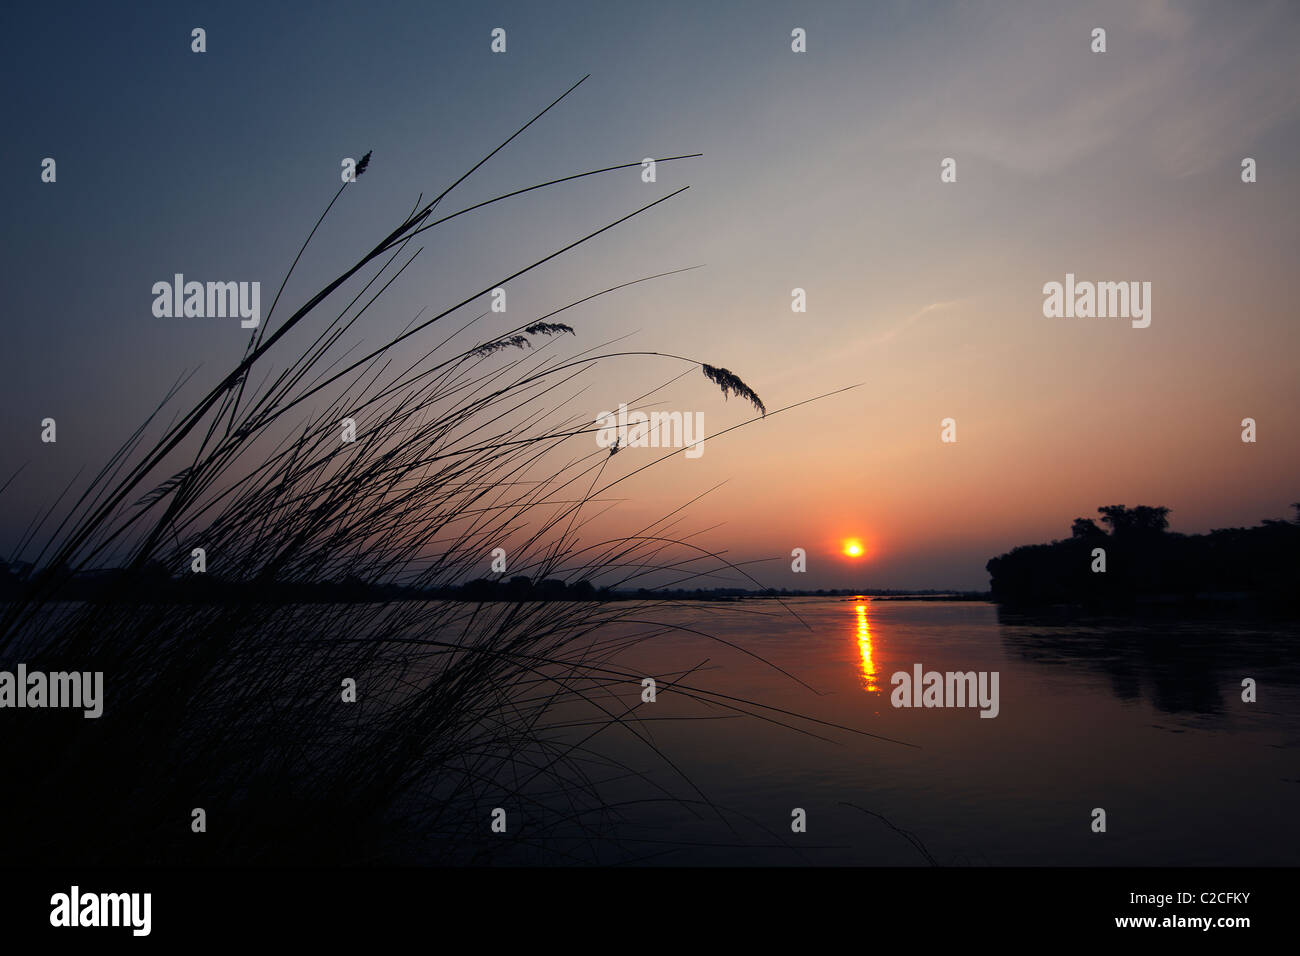 Coastal grasses silhouetted by sunset - Stock Image